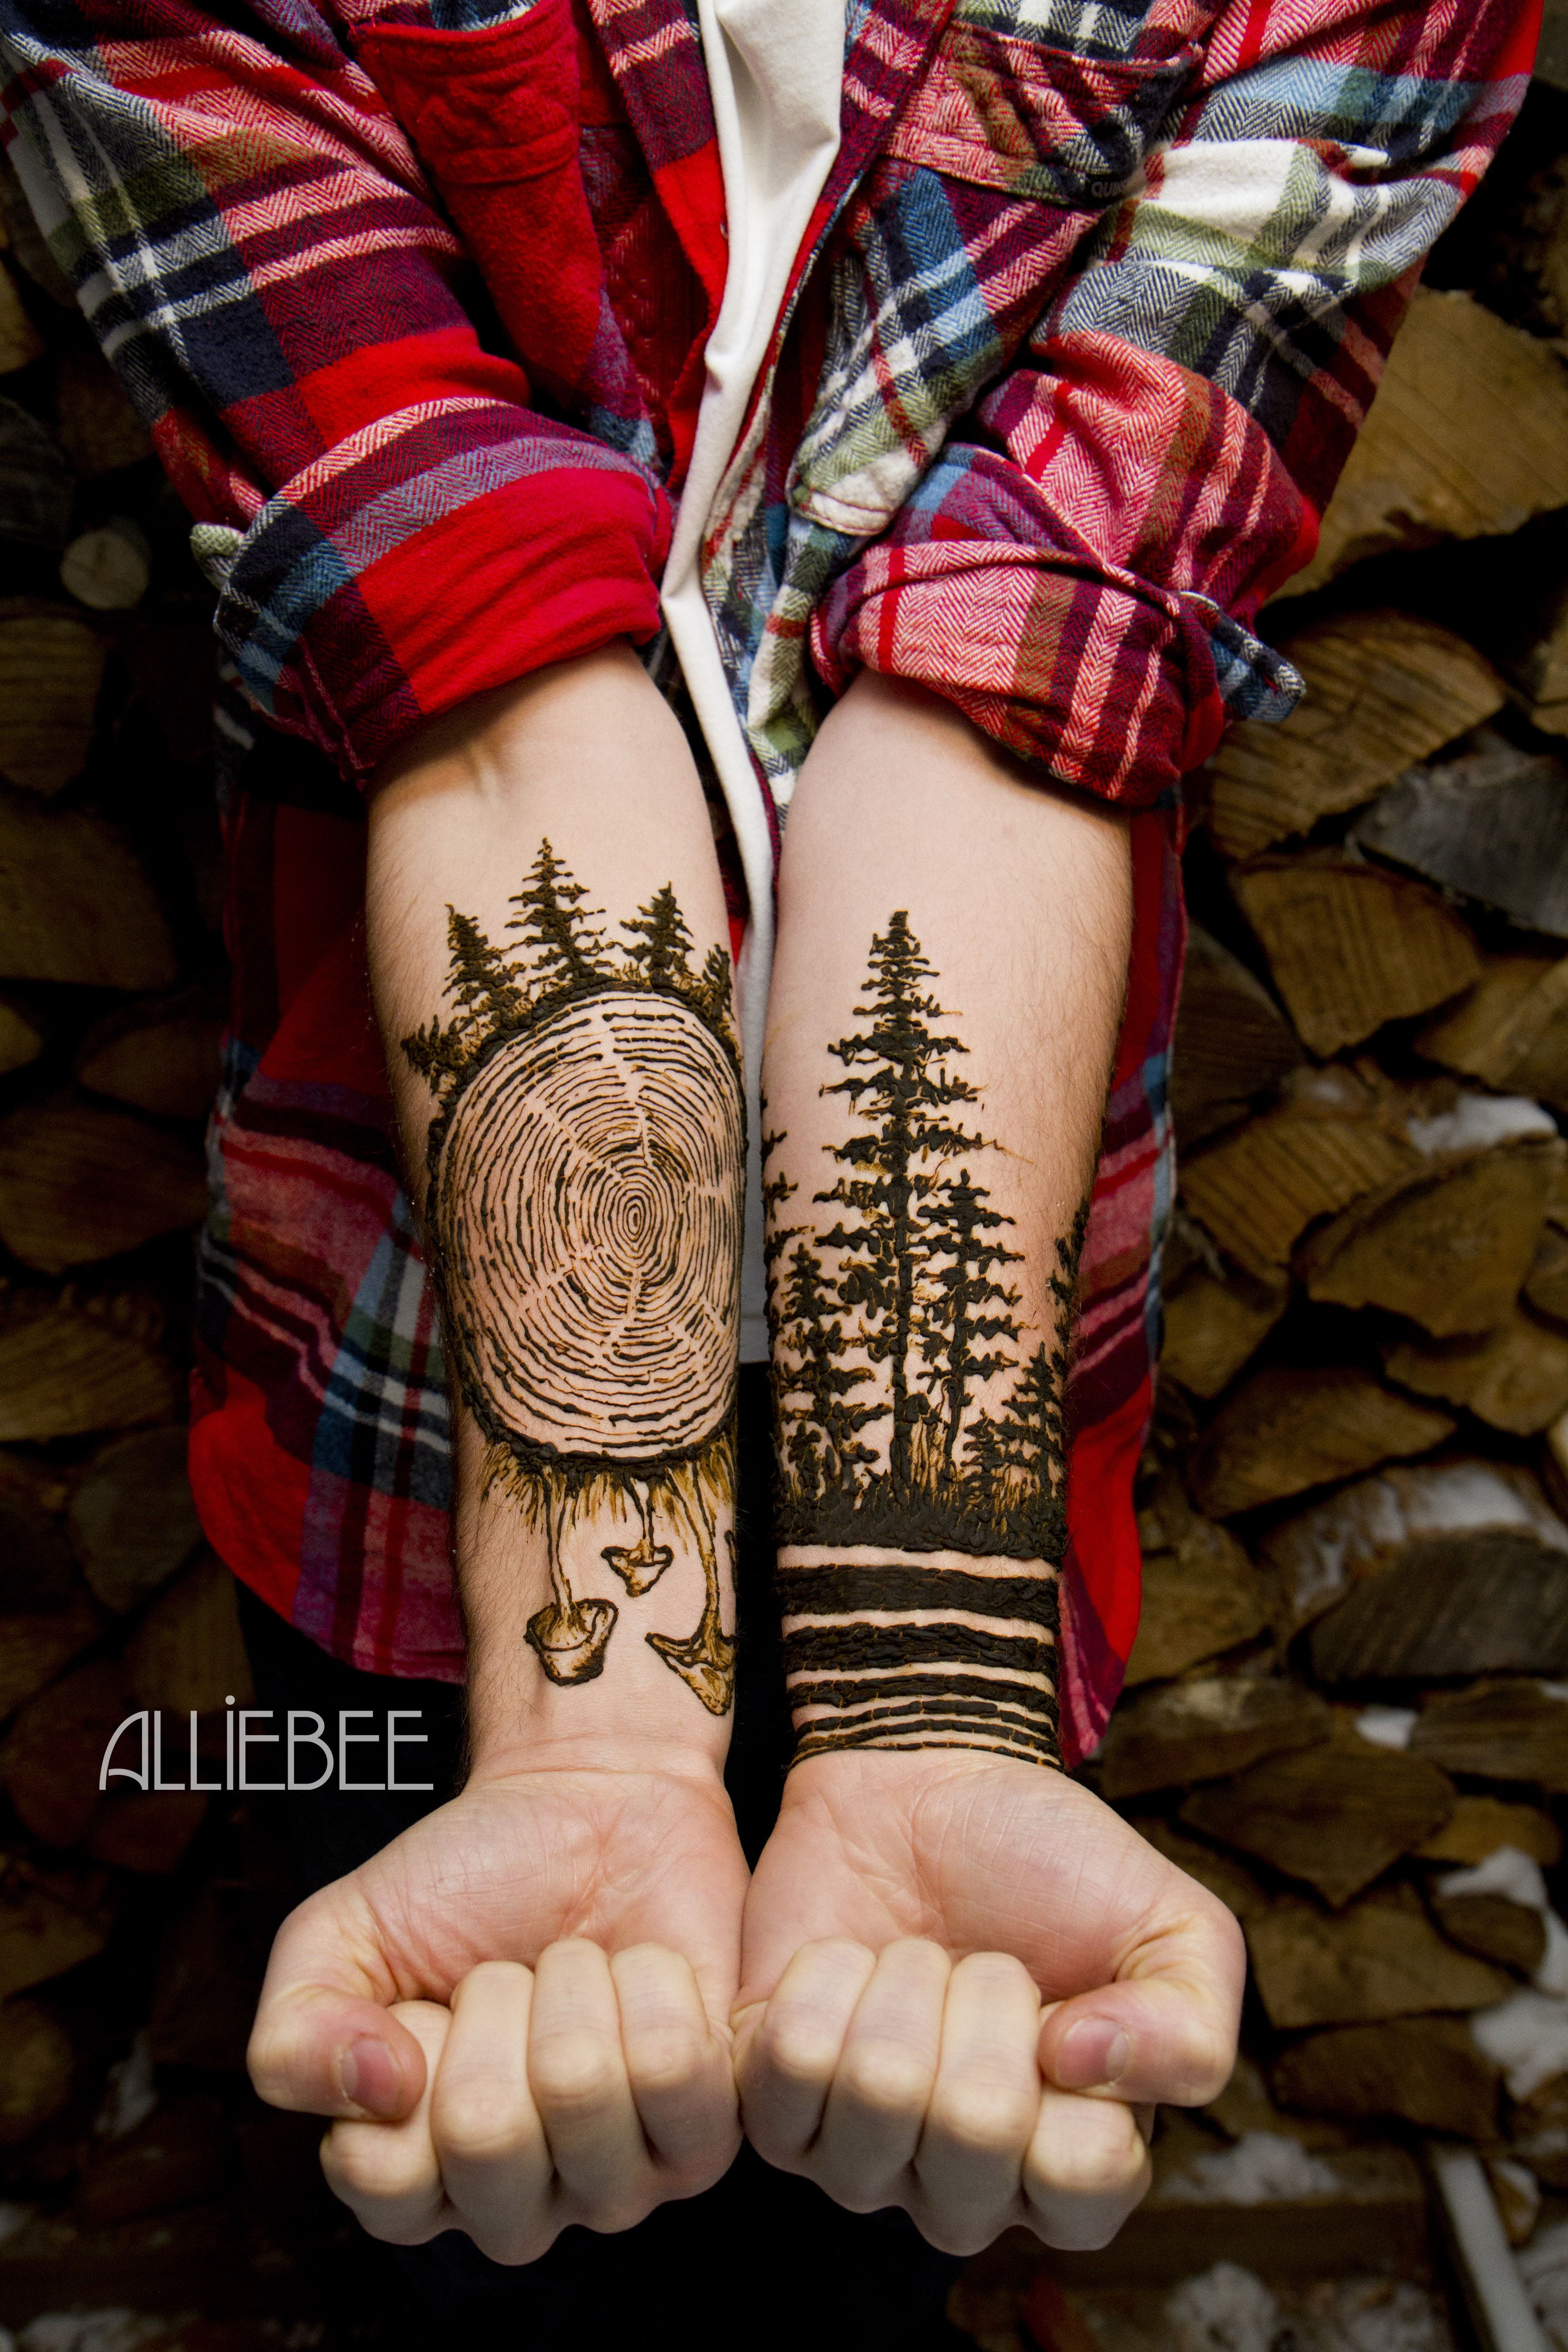 Tattoo ideas for men small arm alliebee henna trees  awesome tattoos  pinterest  henna tree